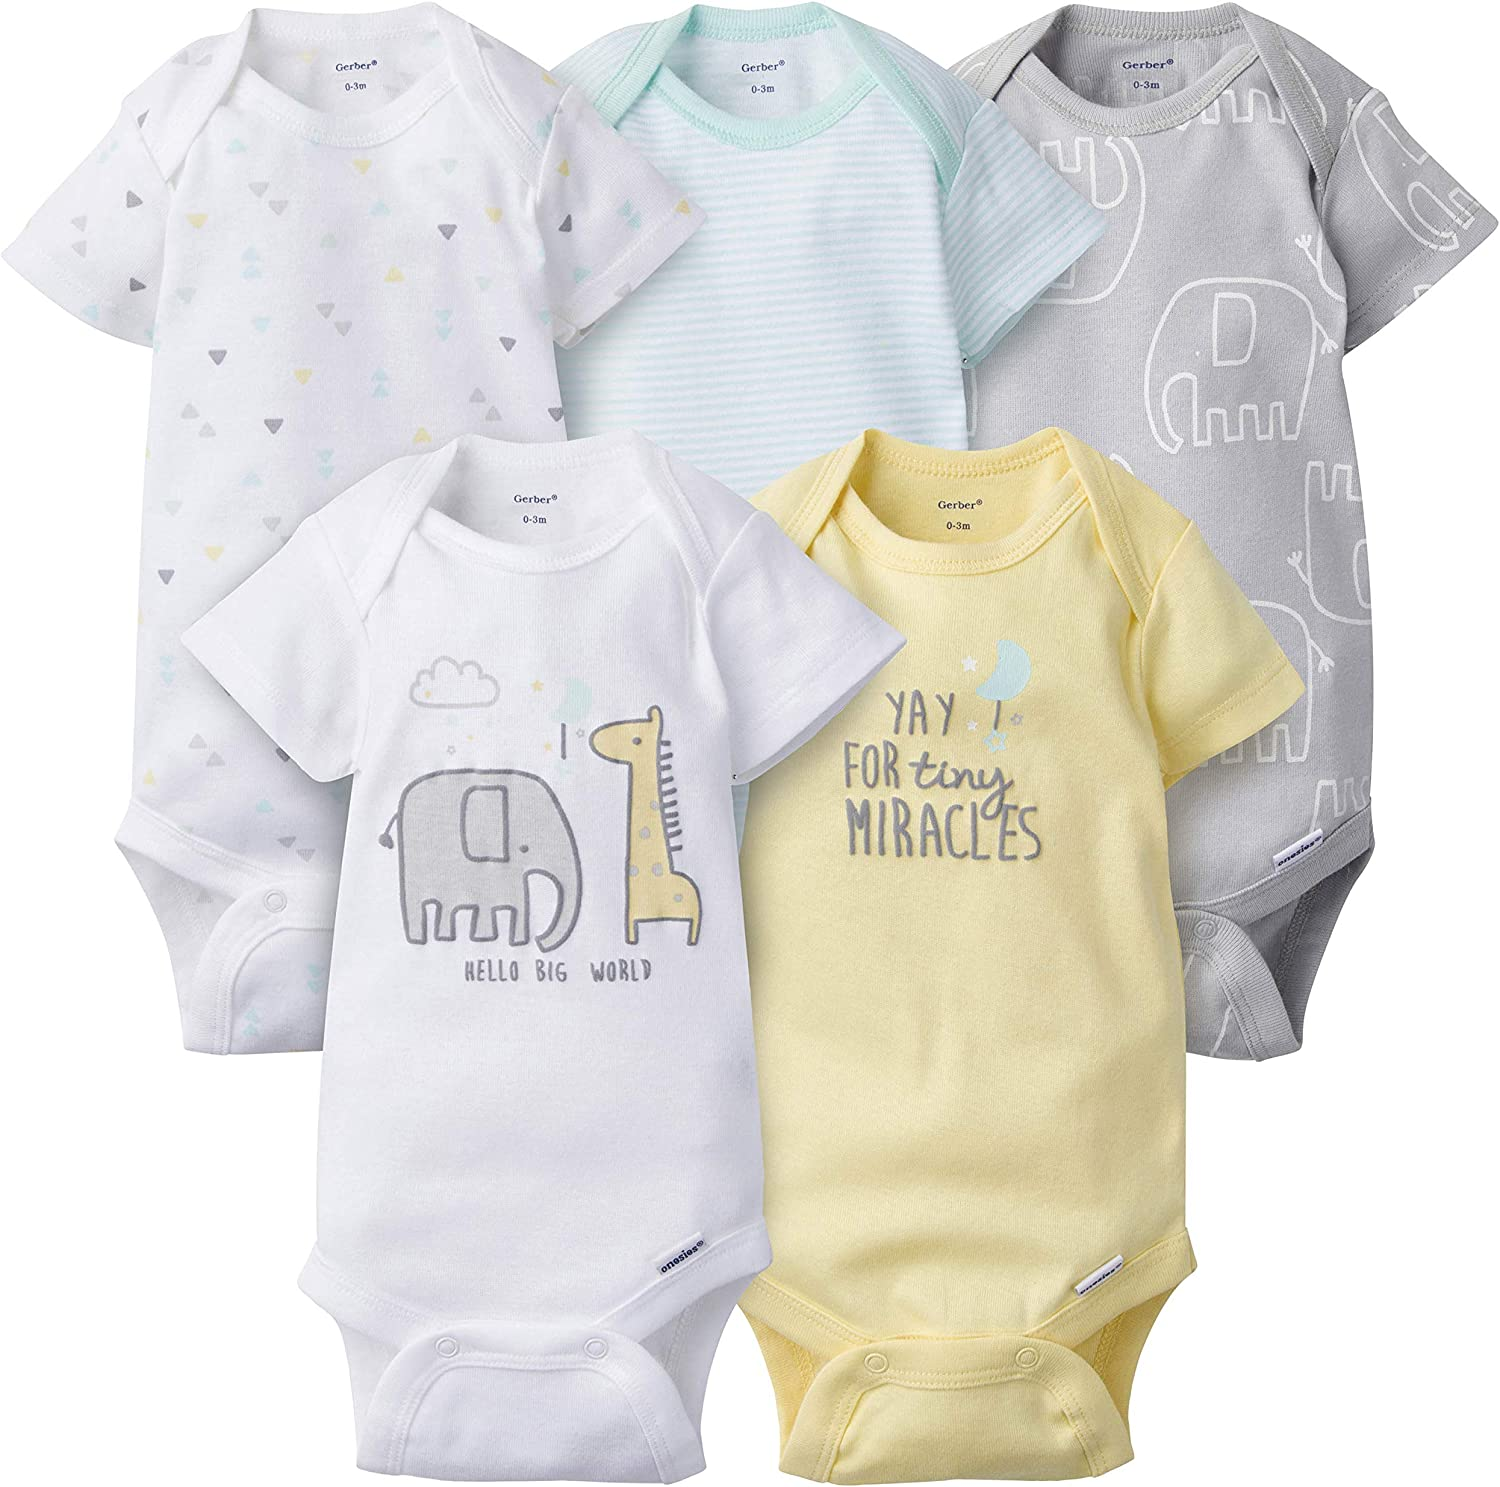 Gerber unisex-baby Ranking integrated 1st place 5-pack Variety Bodysuits Onesies OFFicial